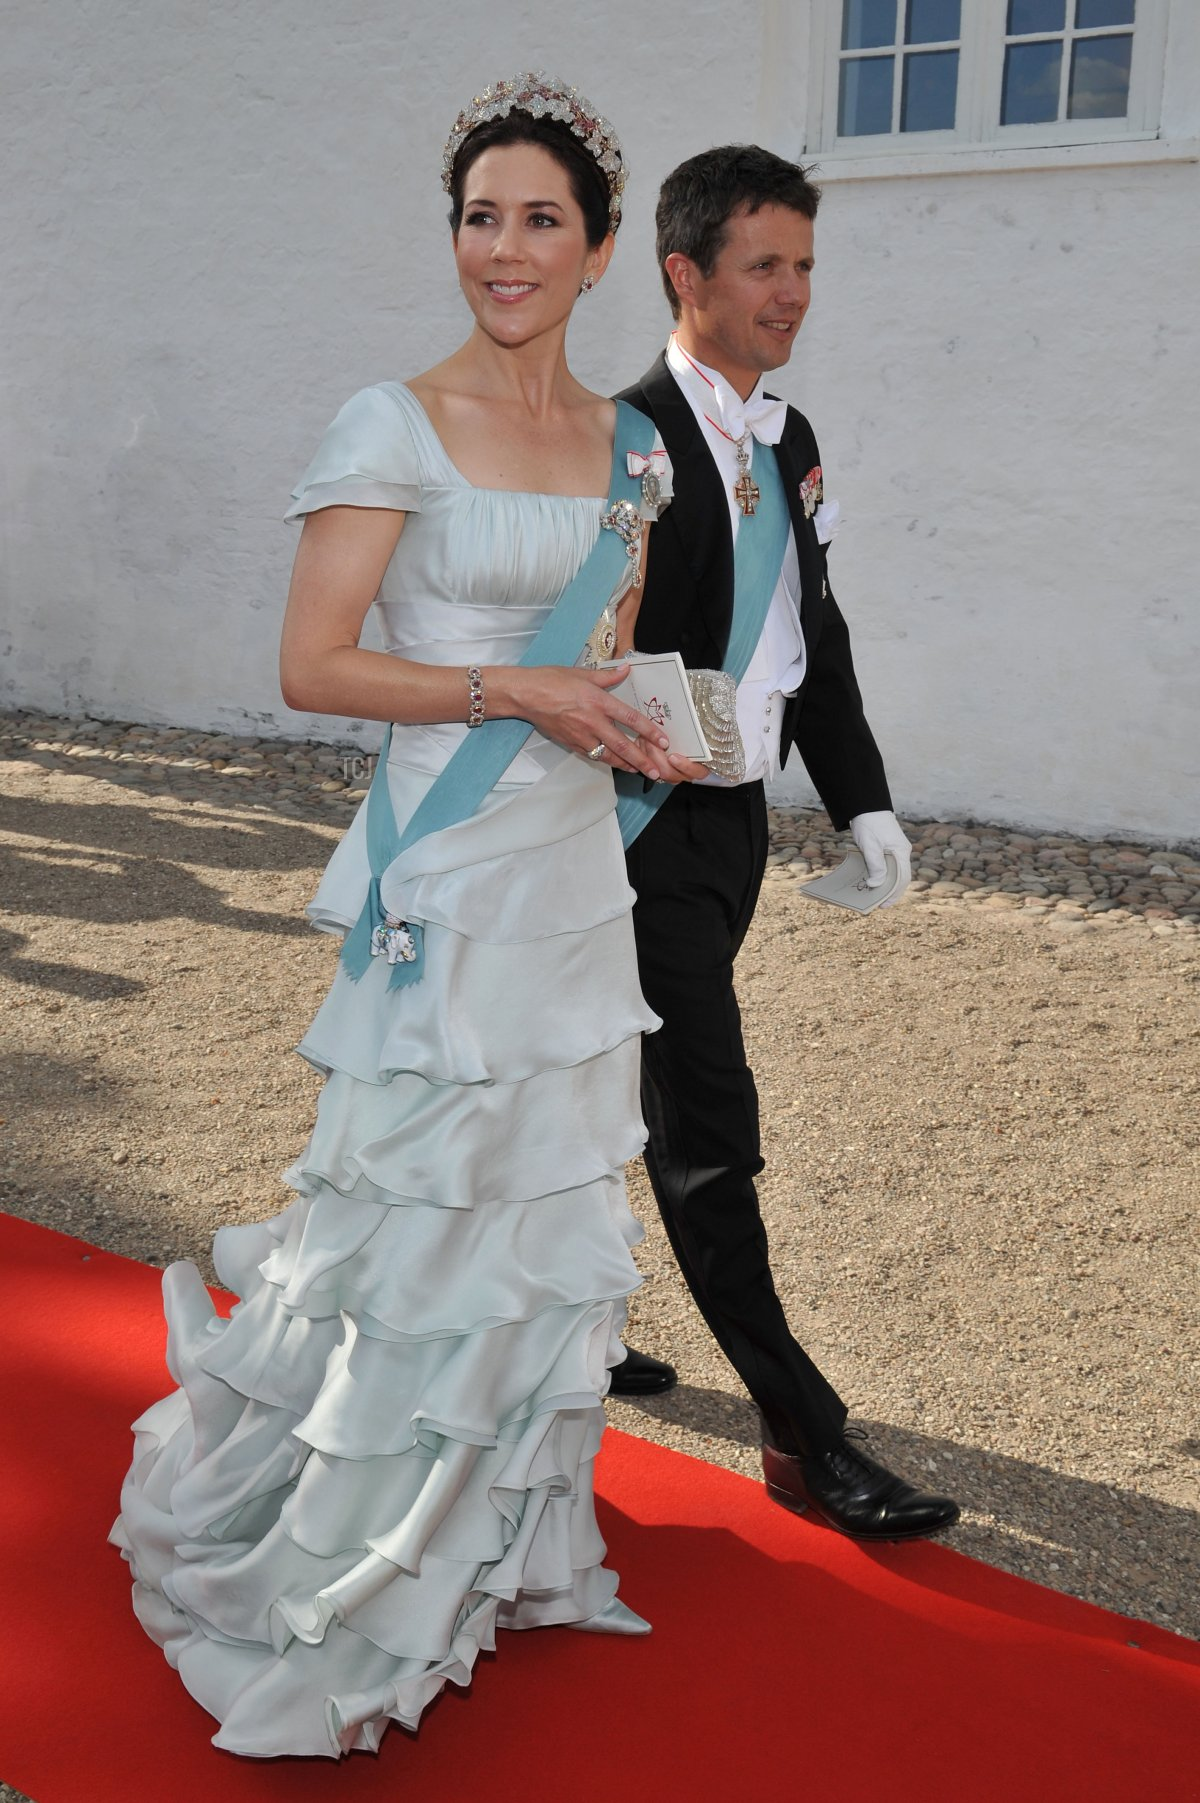 Crown Princess Mary of Denmark attends the wedding between Prince Joachim of Denmark and Marie Cavallier on May 24, 2008 at the Mogeltonder church in Mogeltonder, Denmark